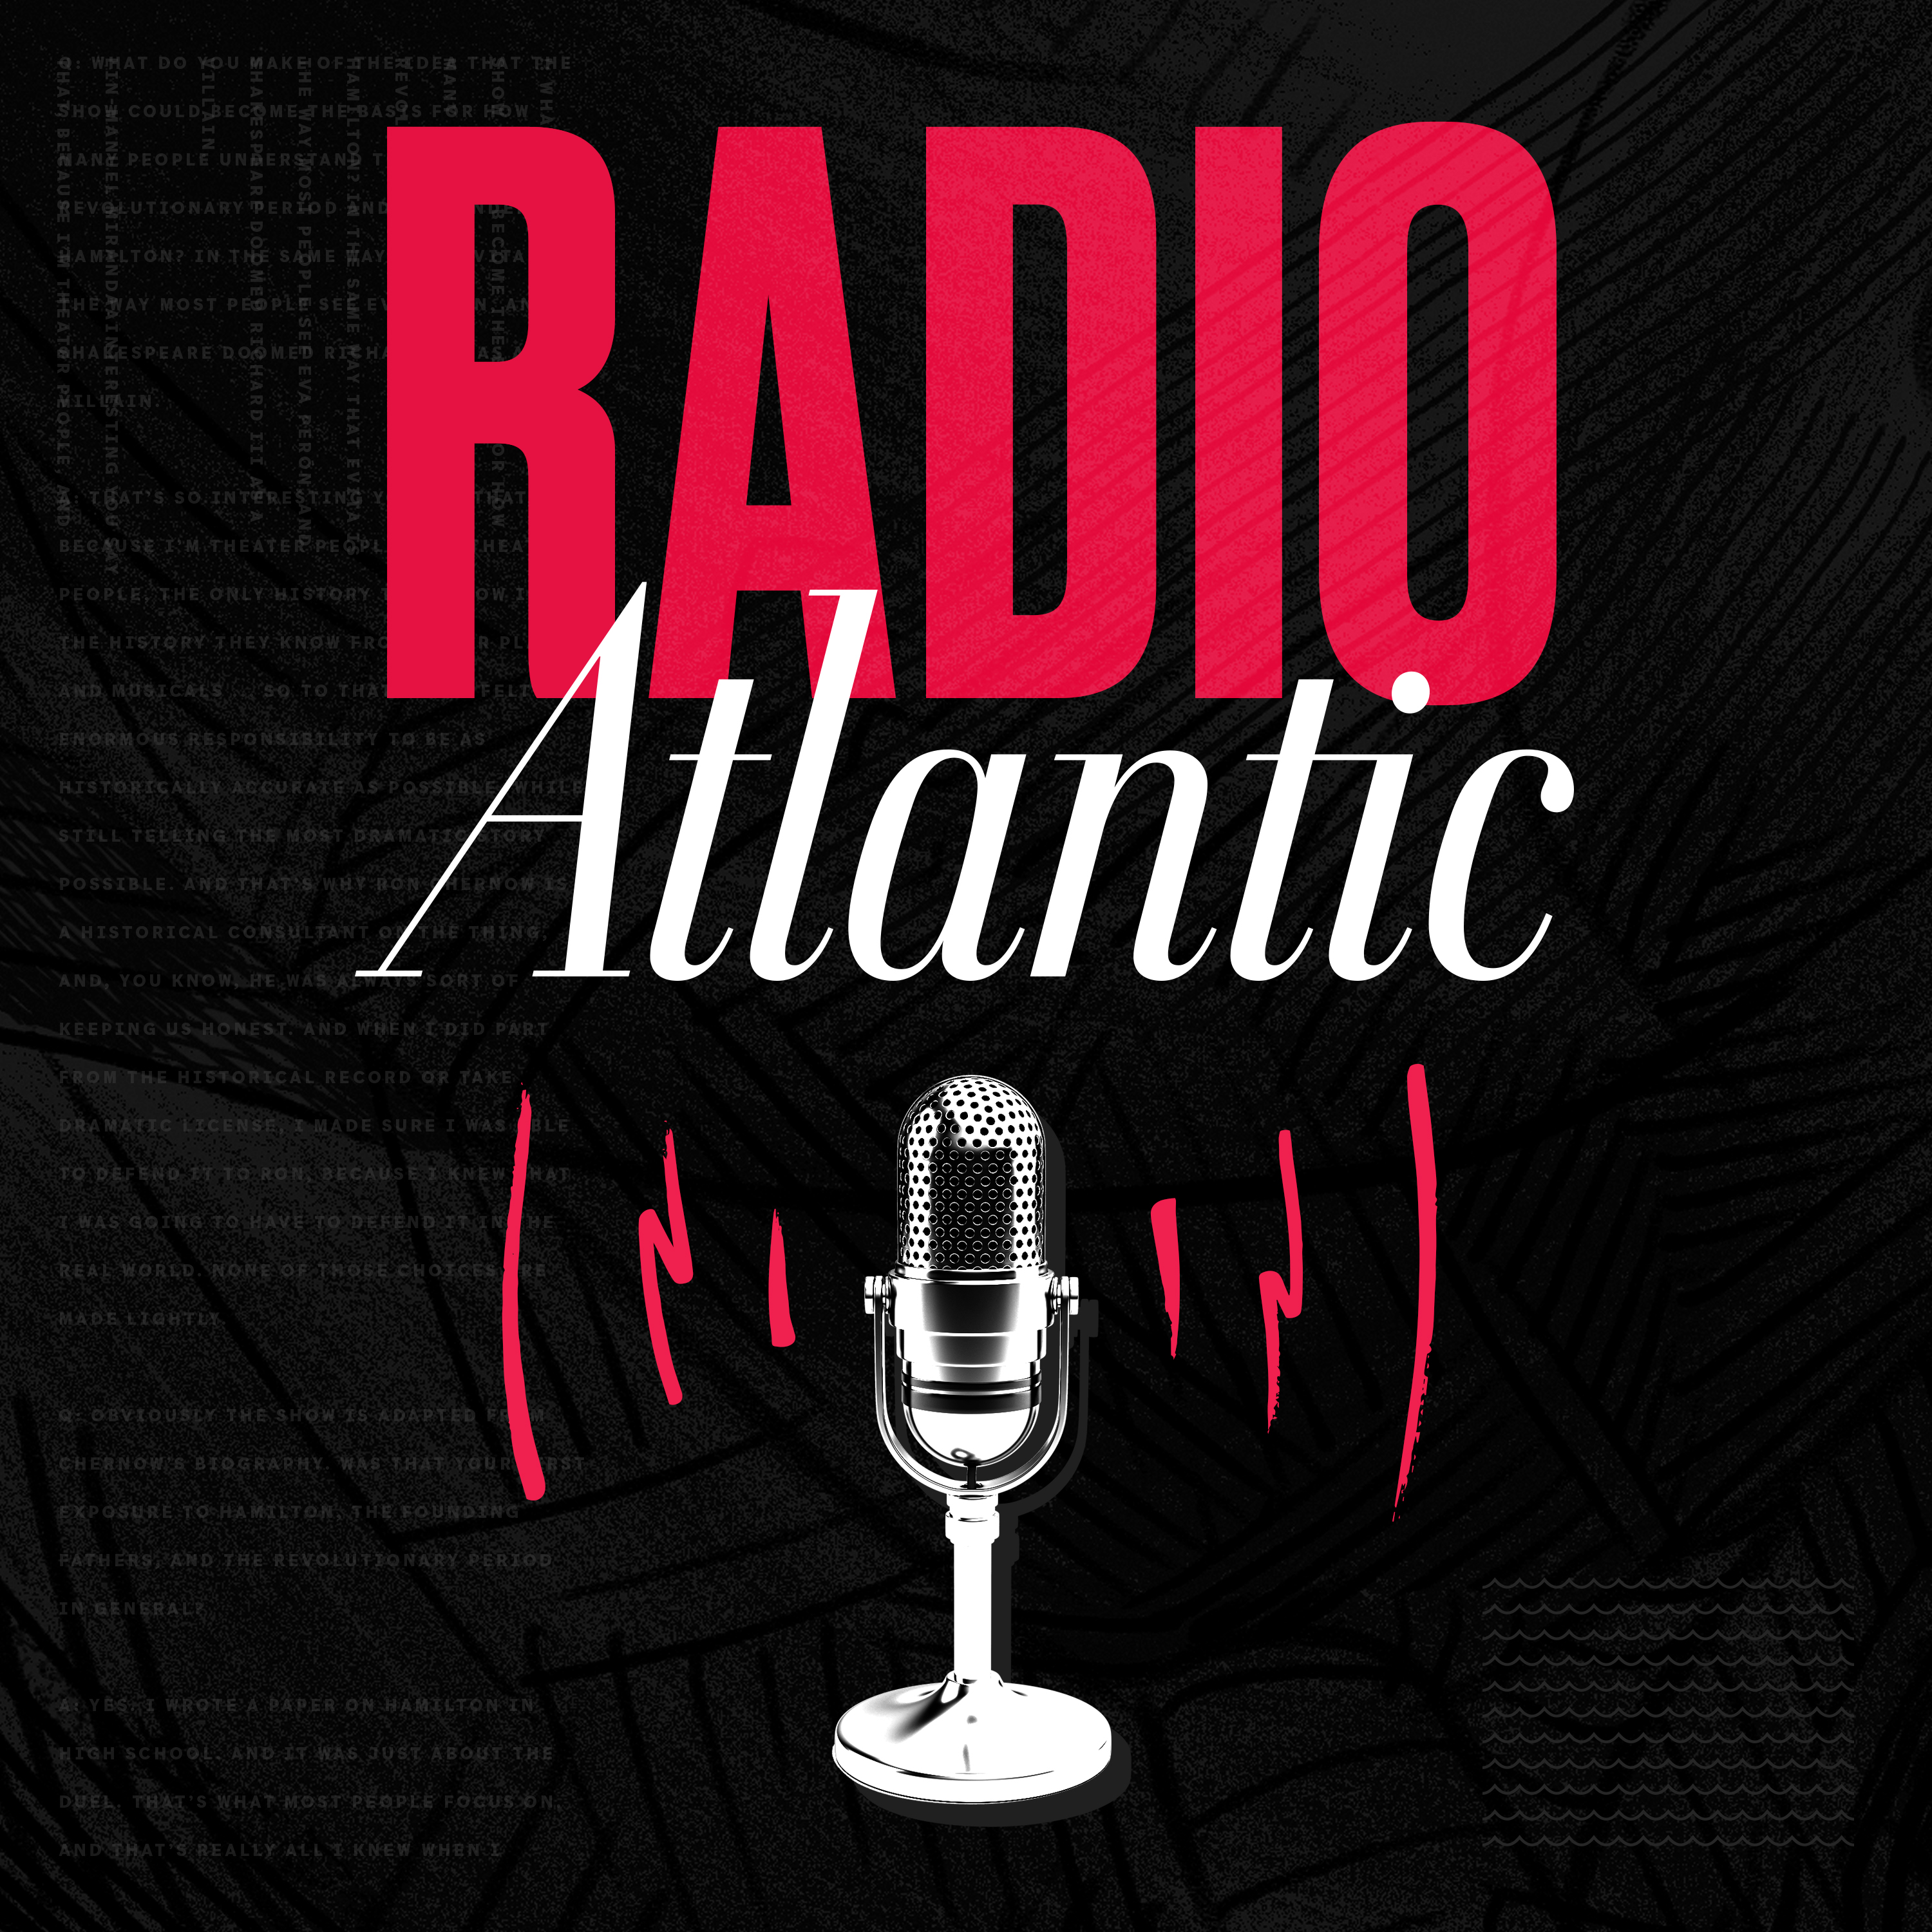 Radio Atlantic From The Atlantic: Weekly conversations with leading journalists and thinkers to make sense of the history happening all around us.